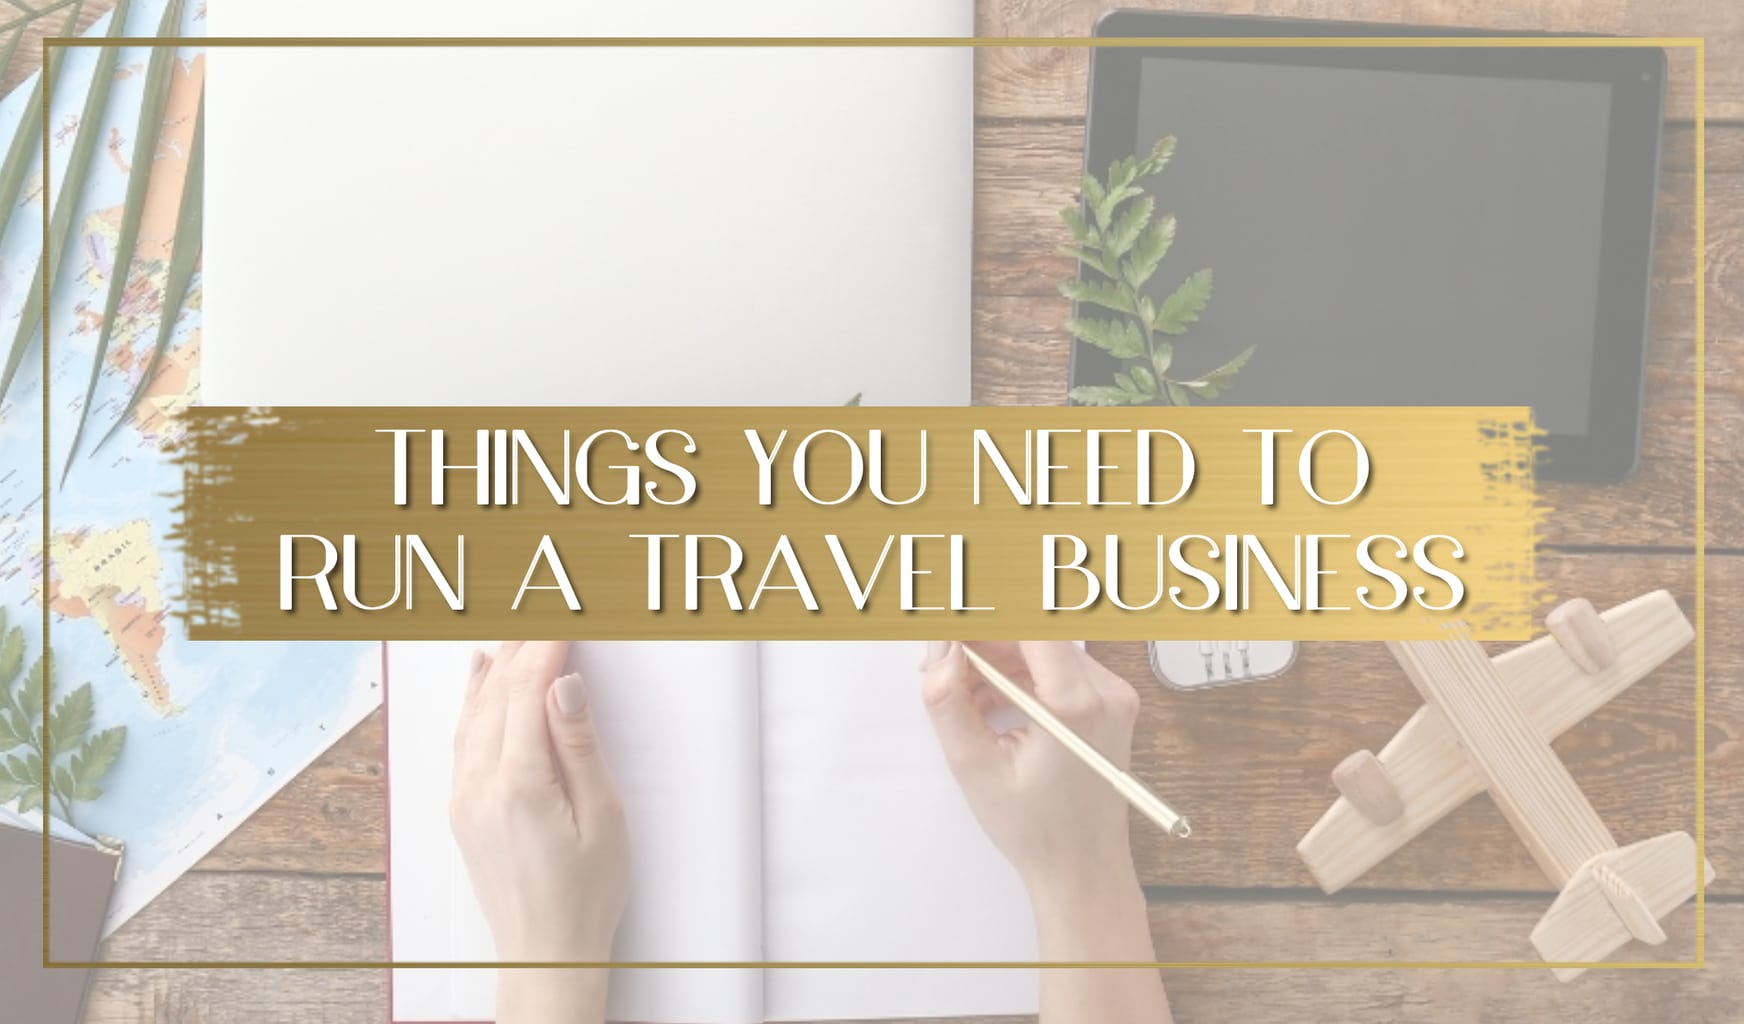 Things you need to run a travel business main